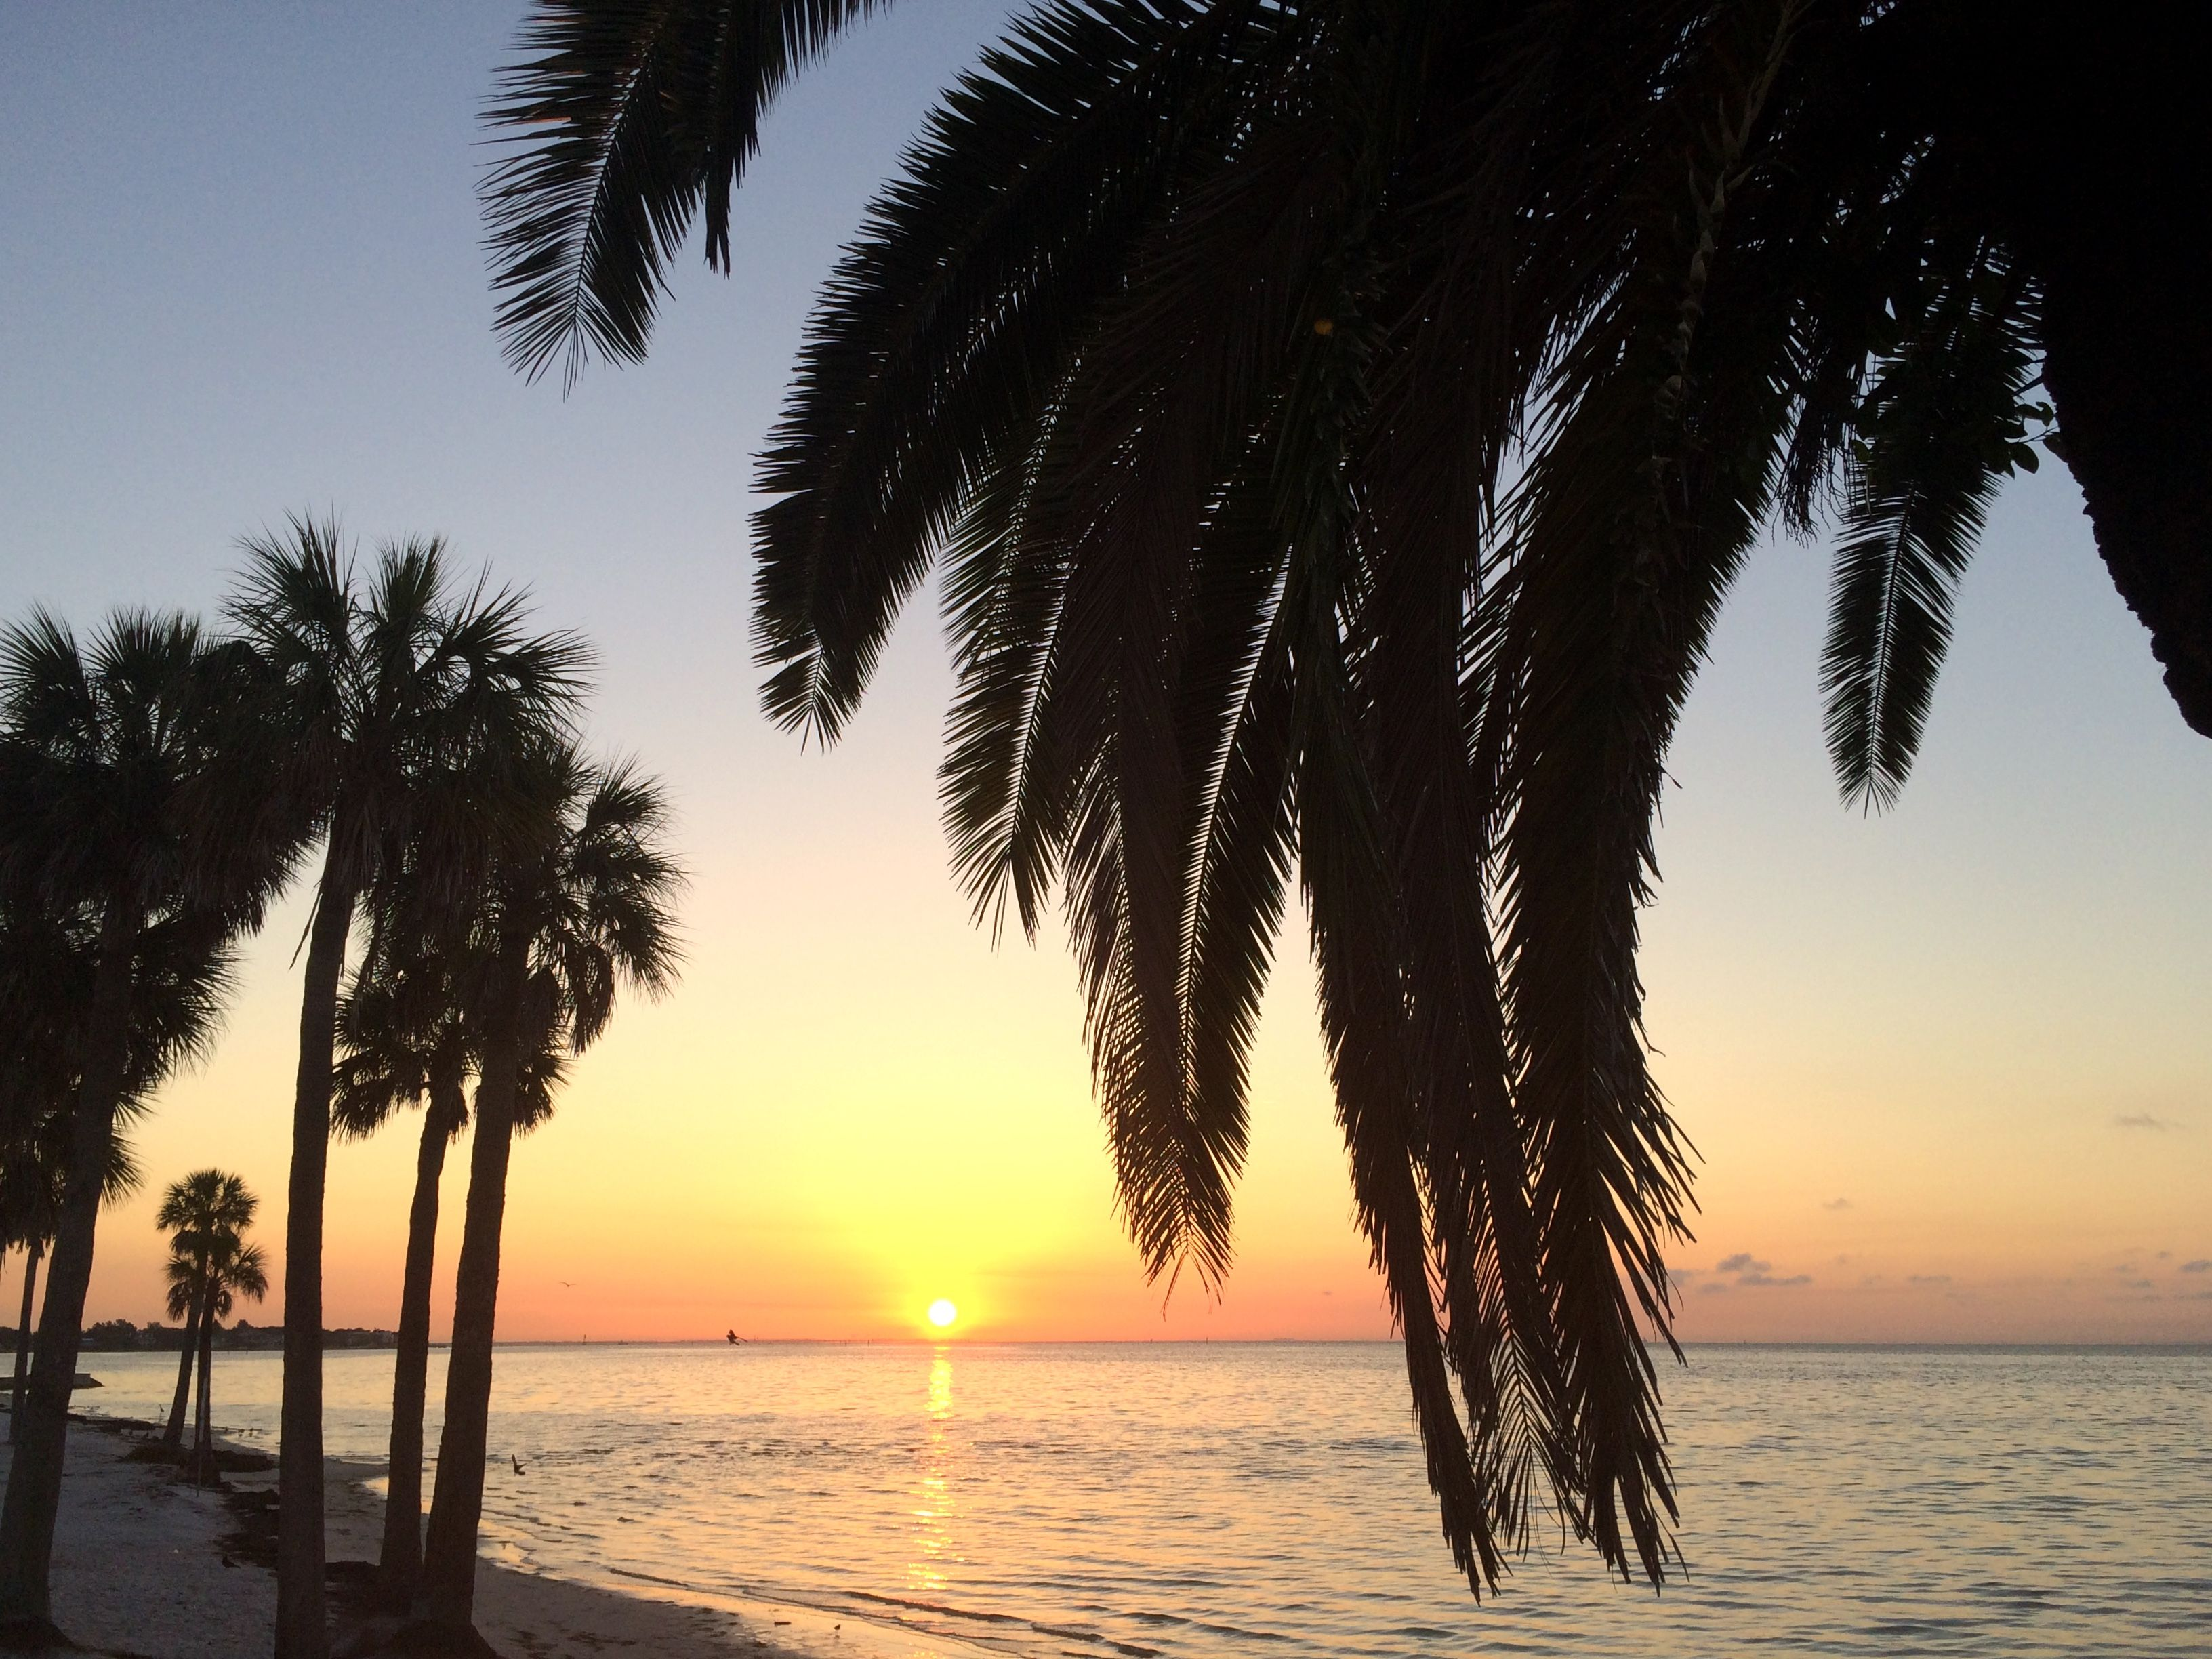 Sunrise from North Shore Park in St. Pete. Petersburg